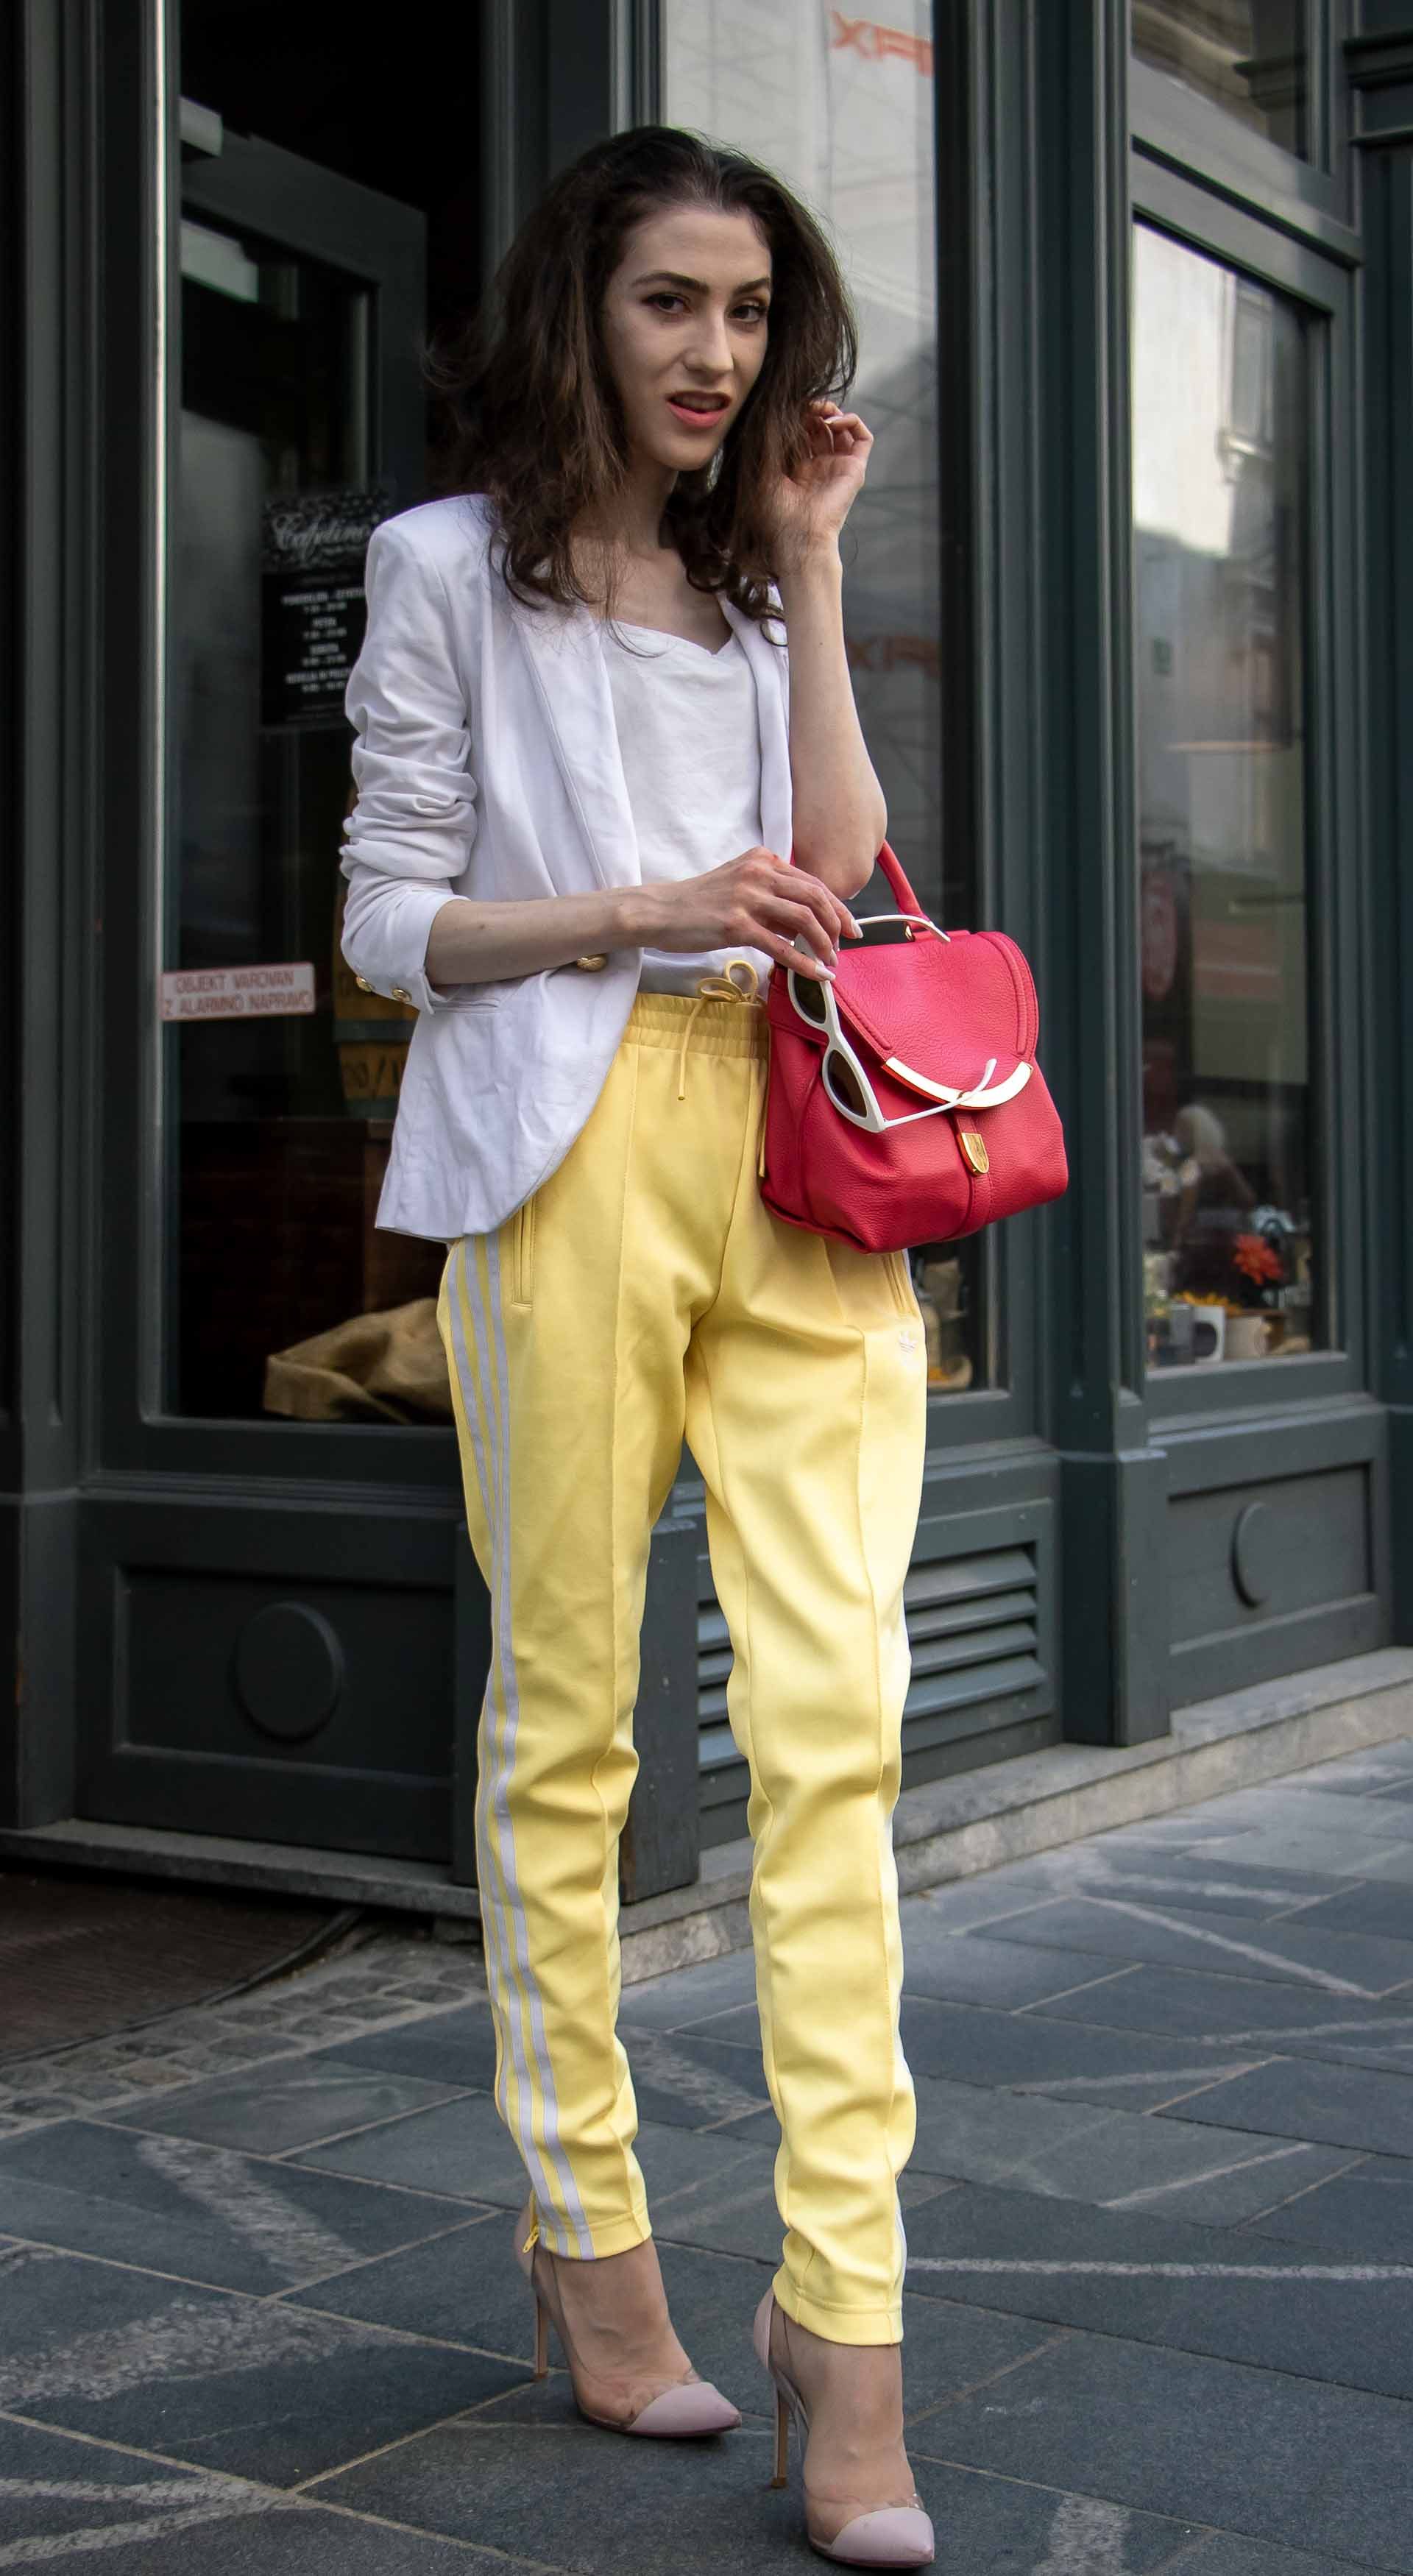 Veronika Lipar Fashion Blogger of Brunette from Wall Street wearing white blazer, white H&M t-shirt, yellow Addidas track pants, See by Chloé pink top handle bag, Adam Selman x Le Specs white cat eye Lolita sunglasses, pink blush Gianvito Rossi plexi pumps on the street in Ljubljana